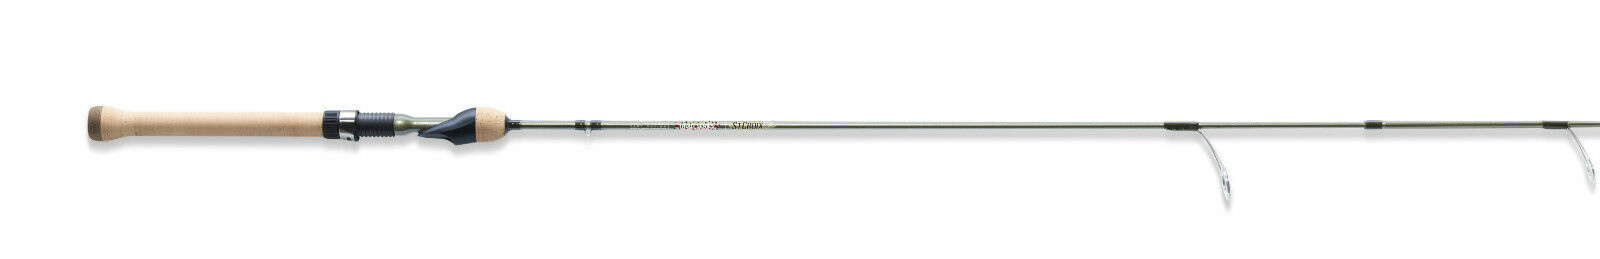 St. Croix Trout Series Spinning Rod 7' Light X-Fast  2pc (TSS70LXF2)  cheap sale outlet online